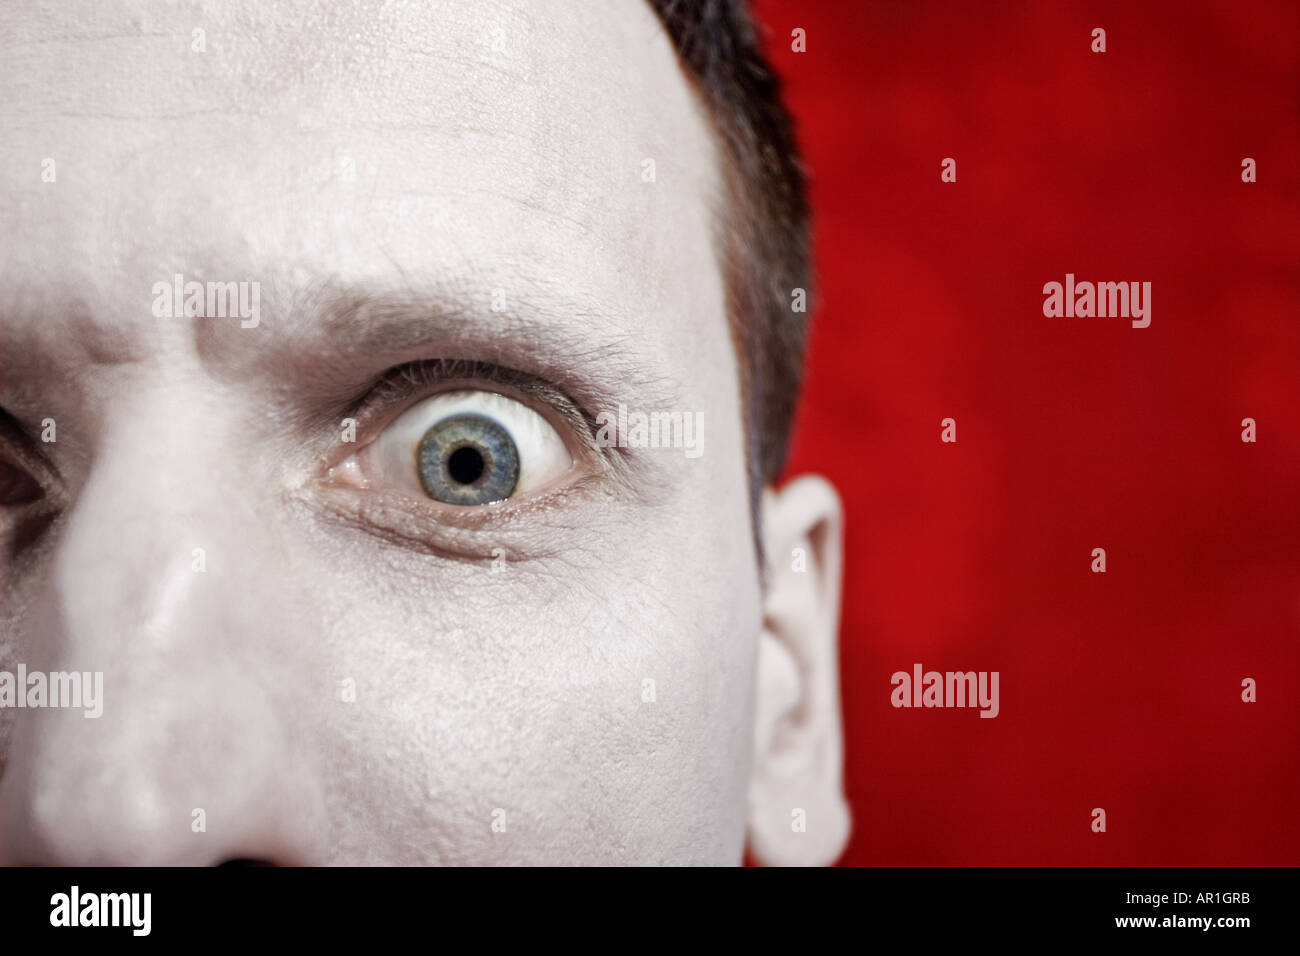 indoor flat room man mature 35 40 dark haired fragment face nose eye open wide facial expression mime scarry scared fear clos - Stock Image